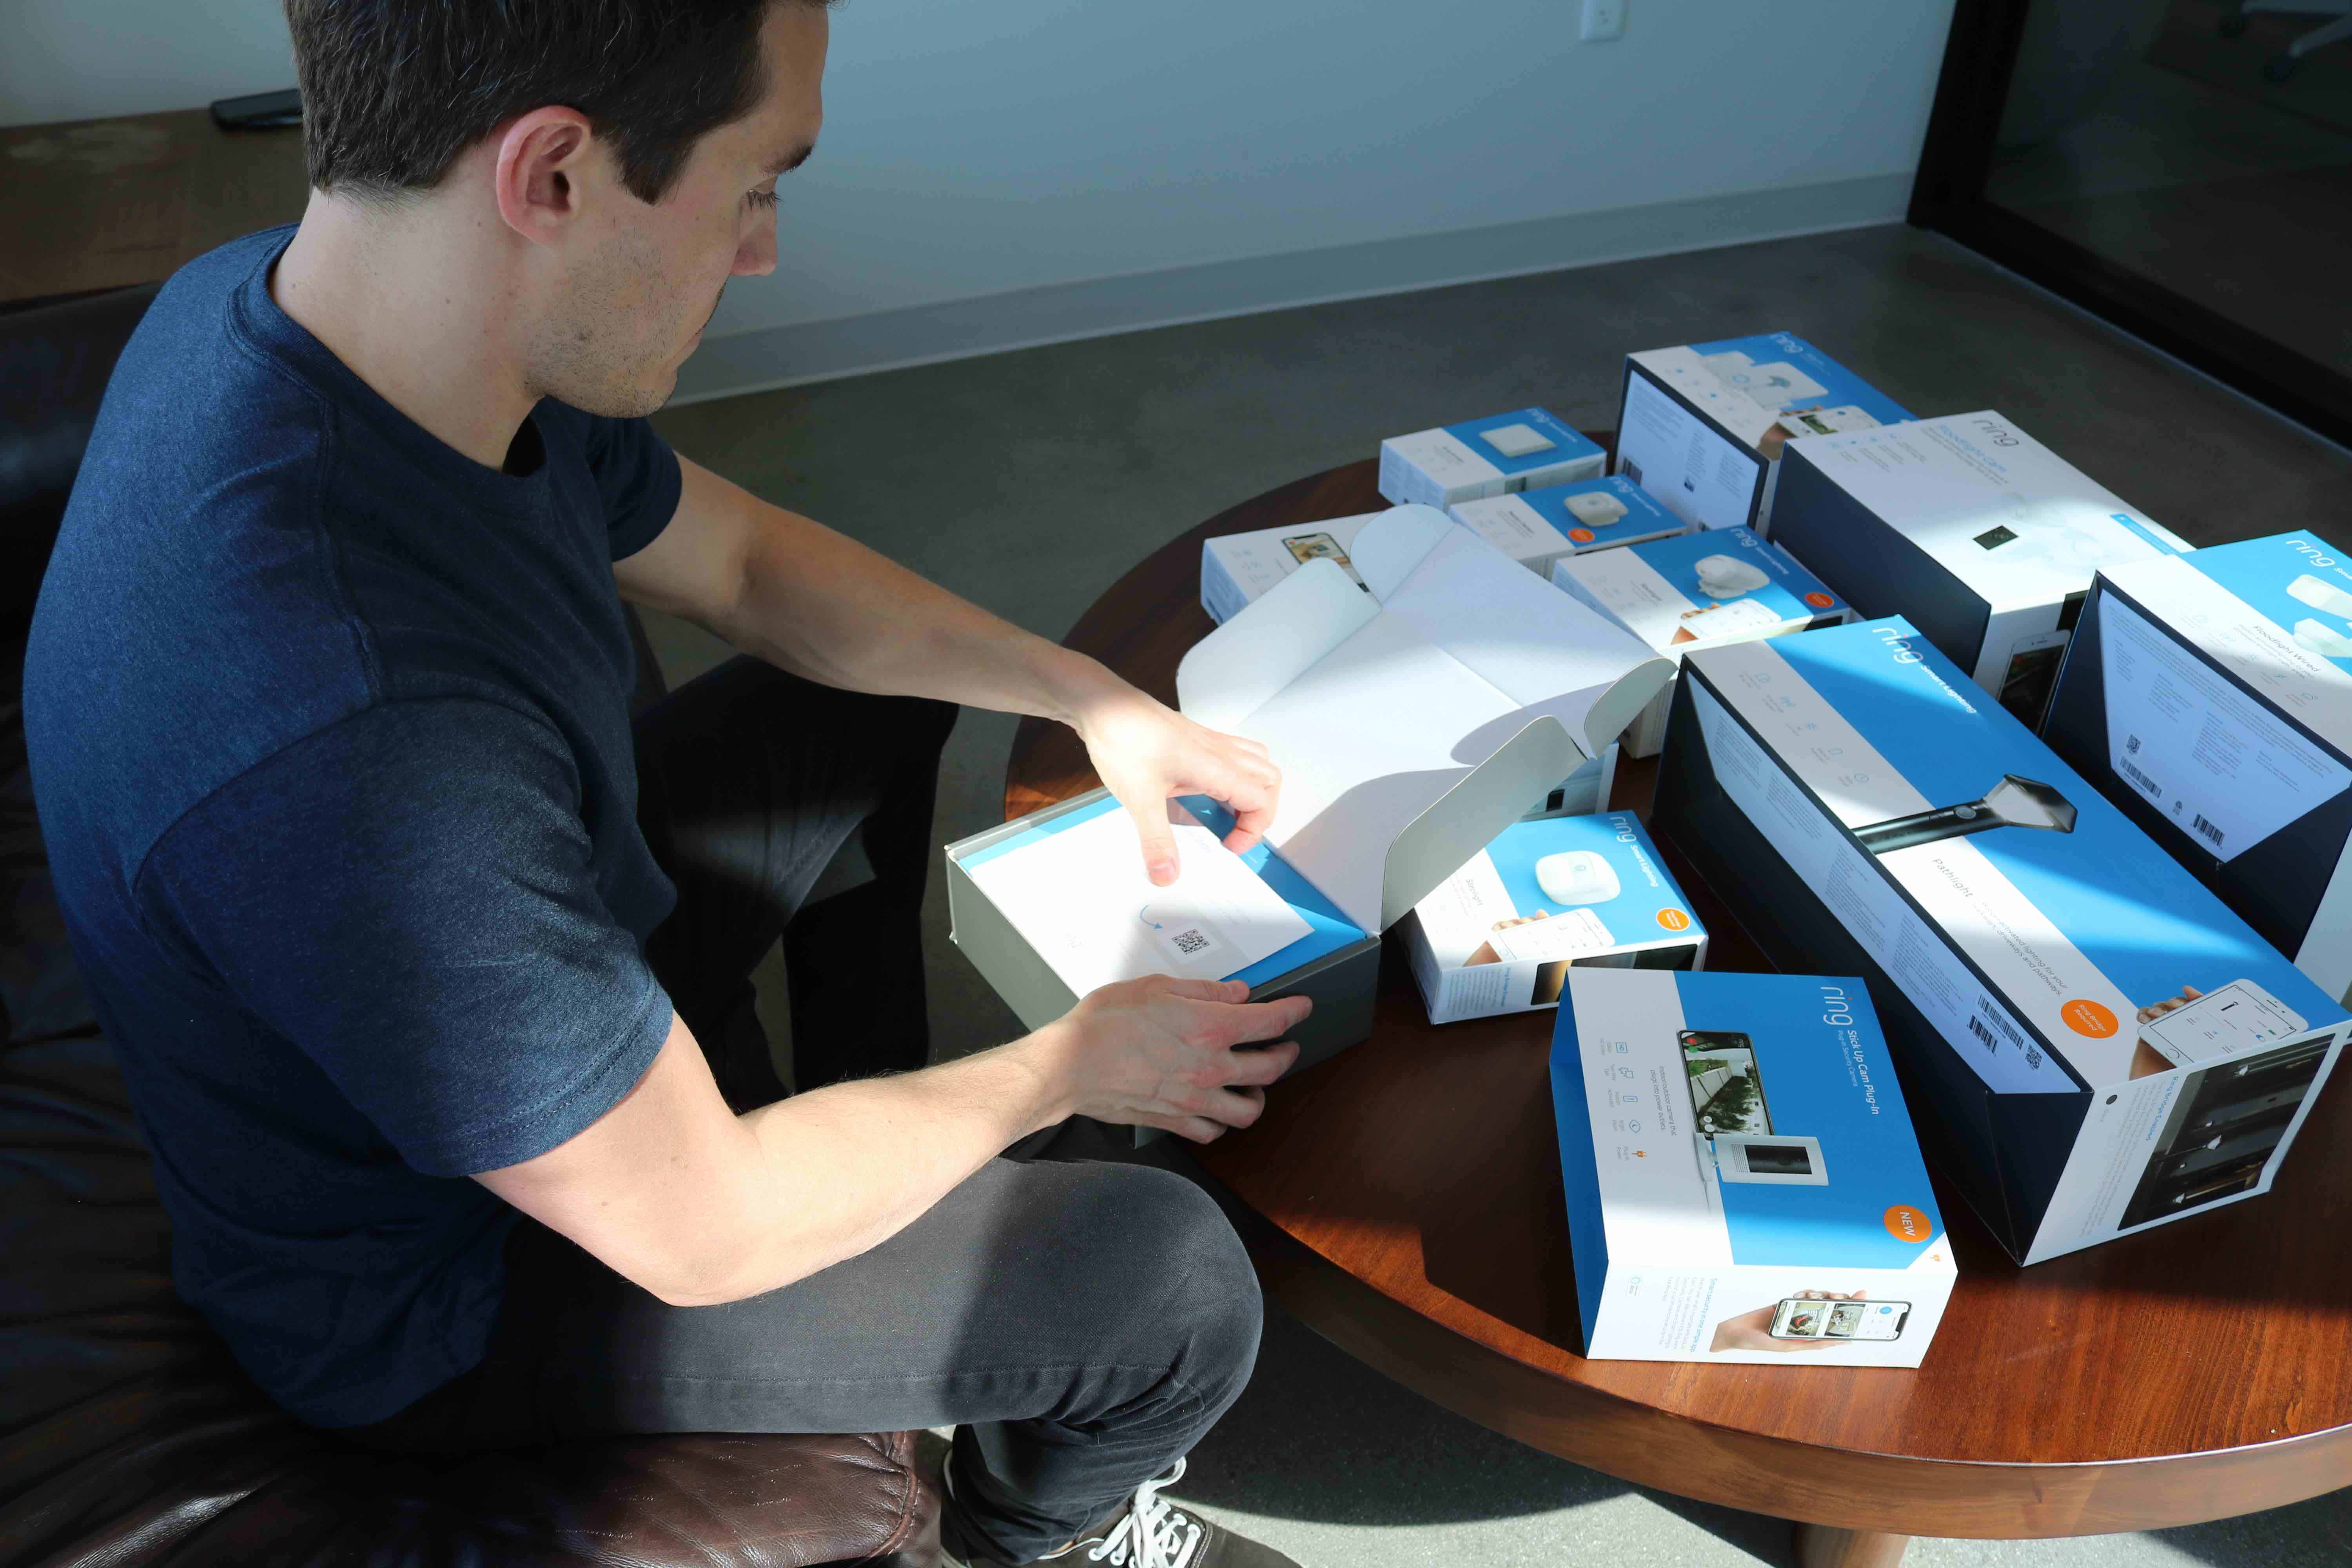 Ring Security System Unboxing